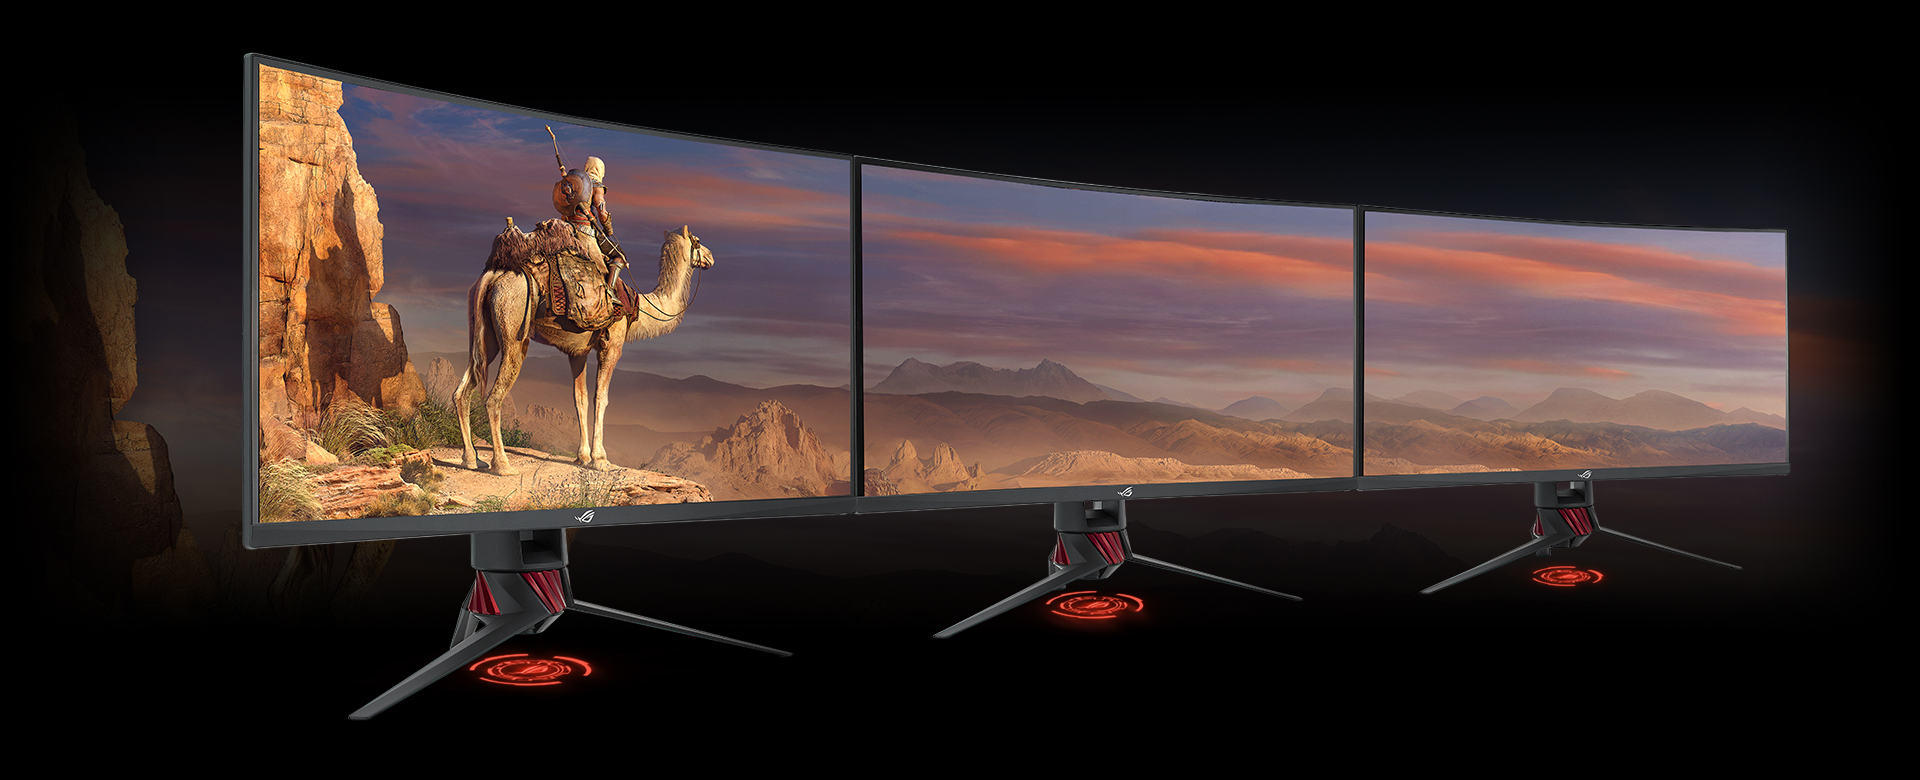 A Set of Three Monitors Side by Side, Forming a Connected Display with a desert scenery